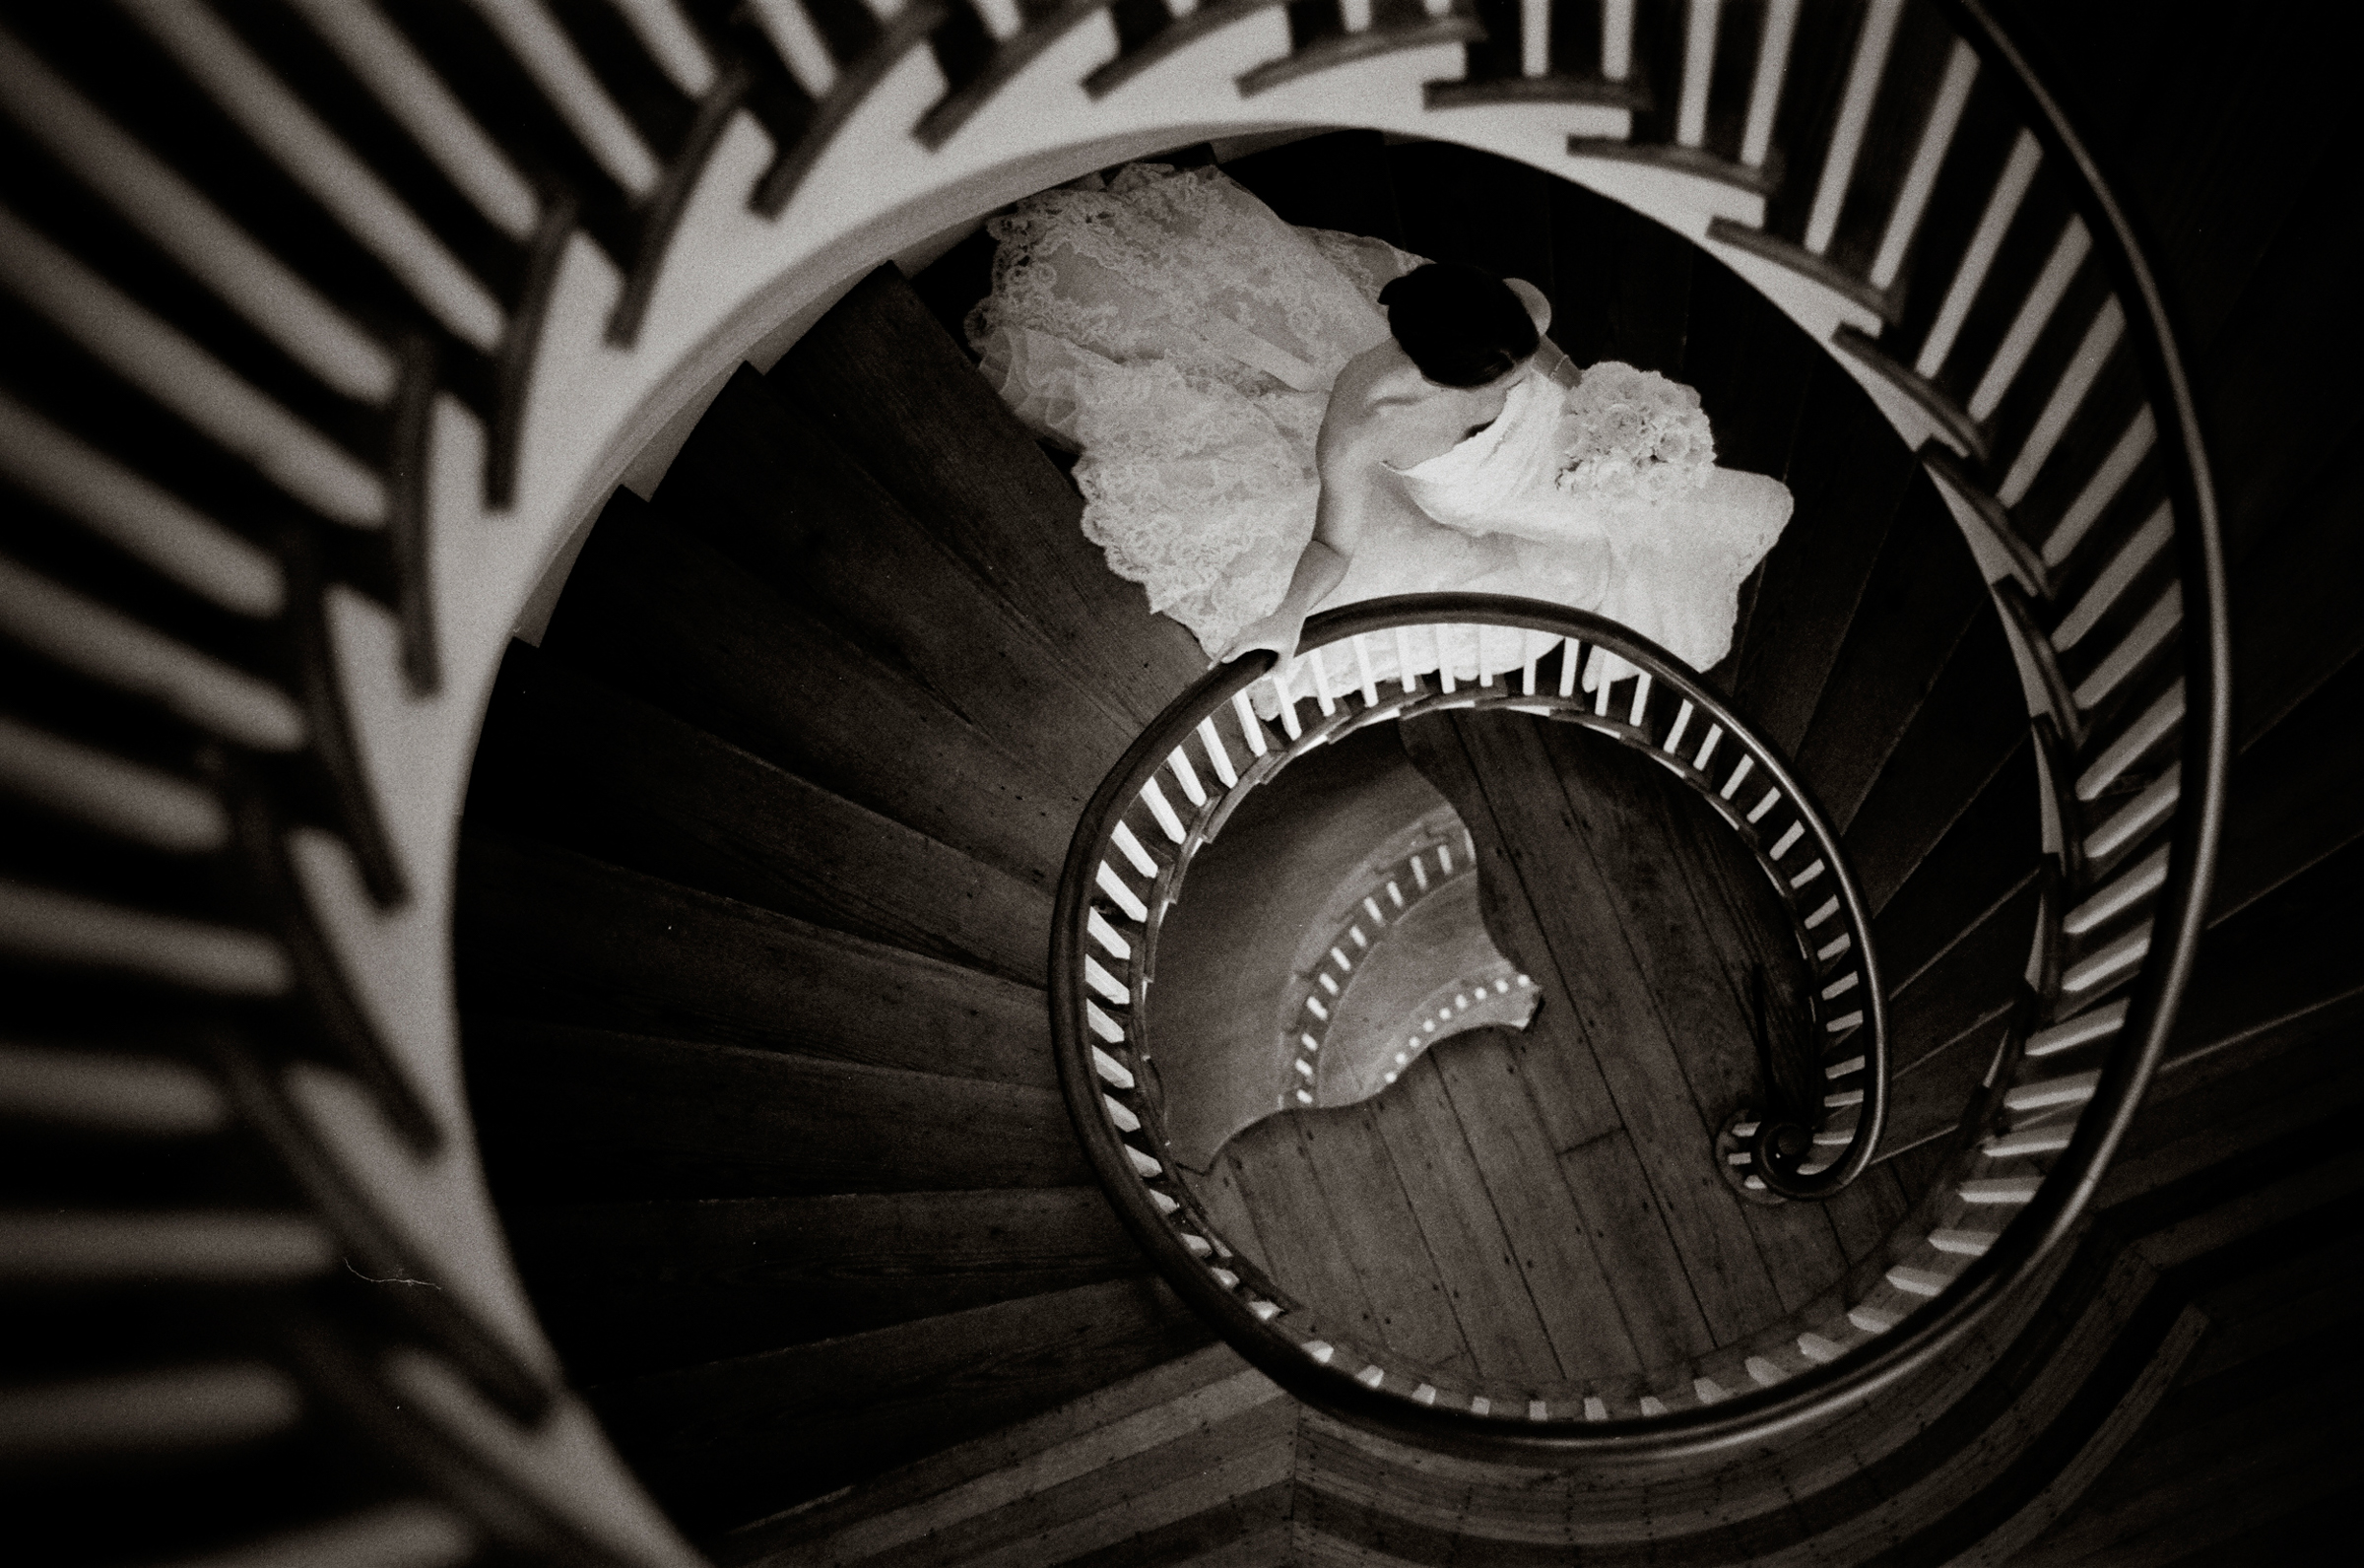 Bride descends wooden spiral stairway - photo by Richard Israel Photography